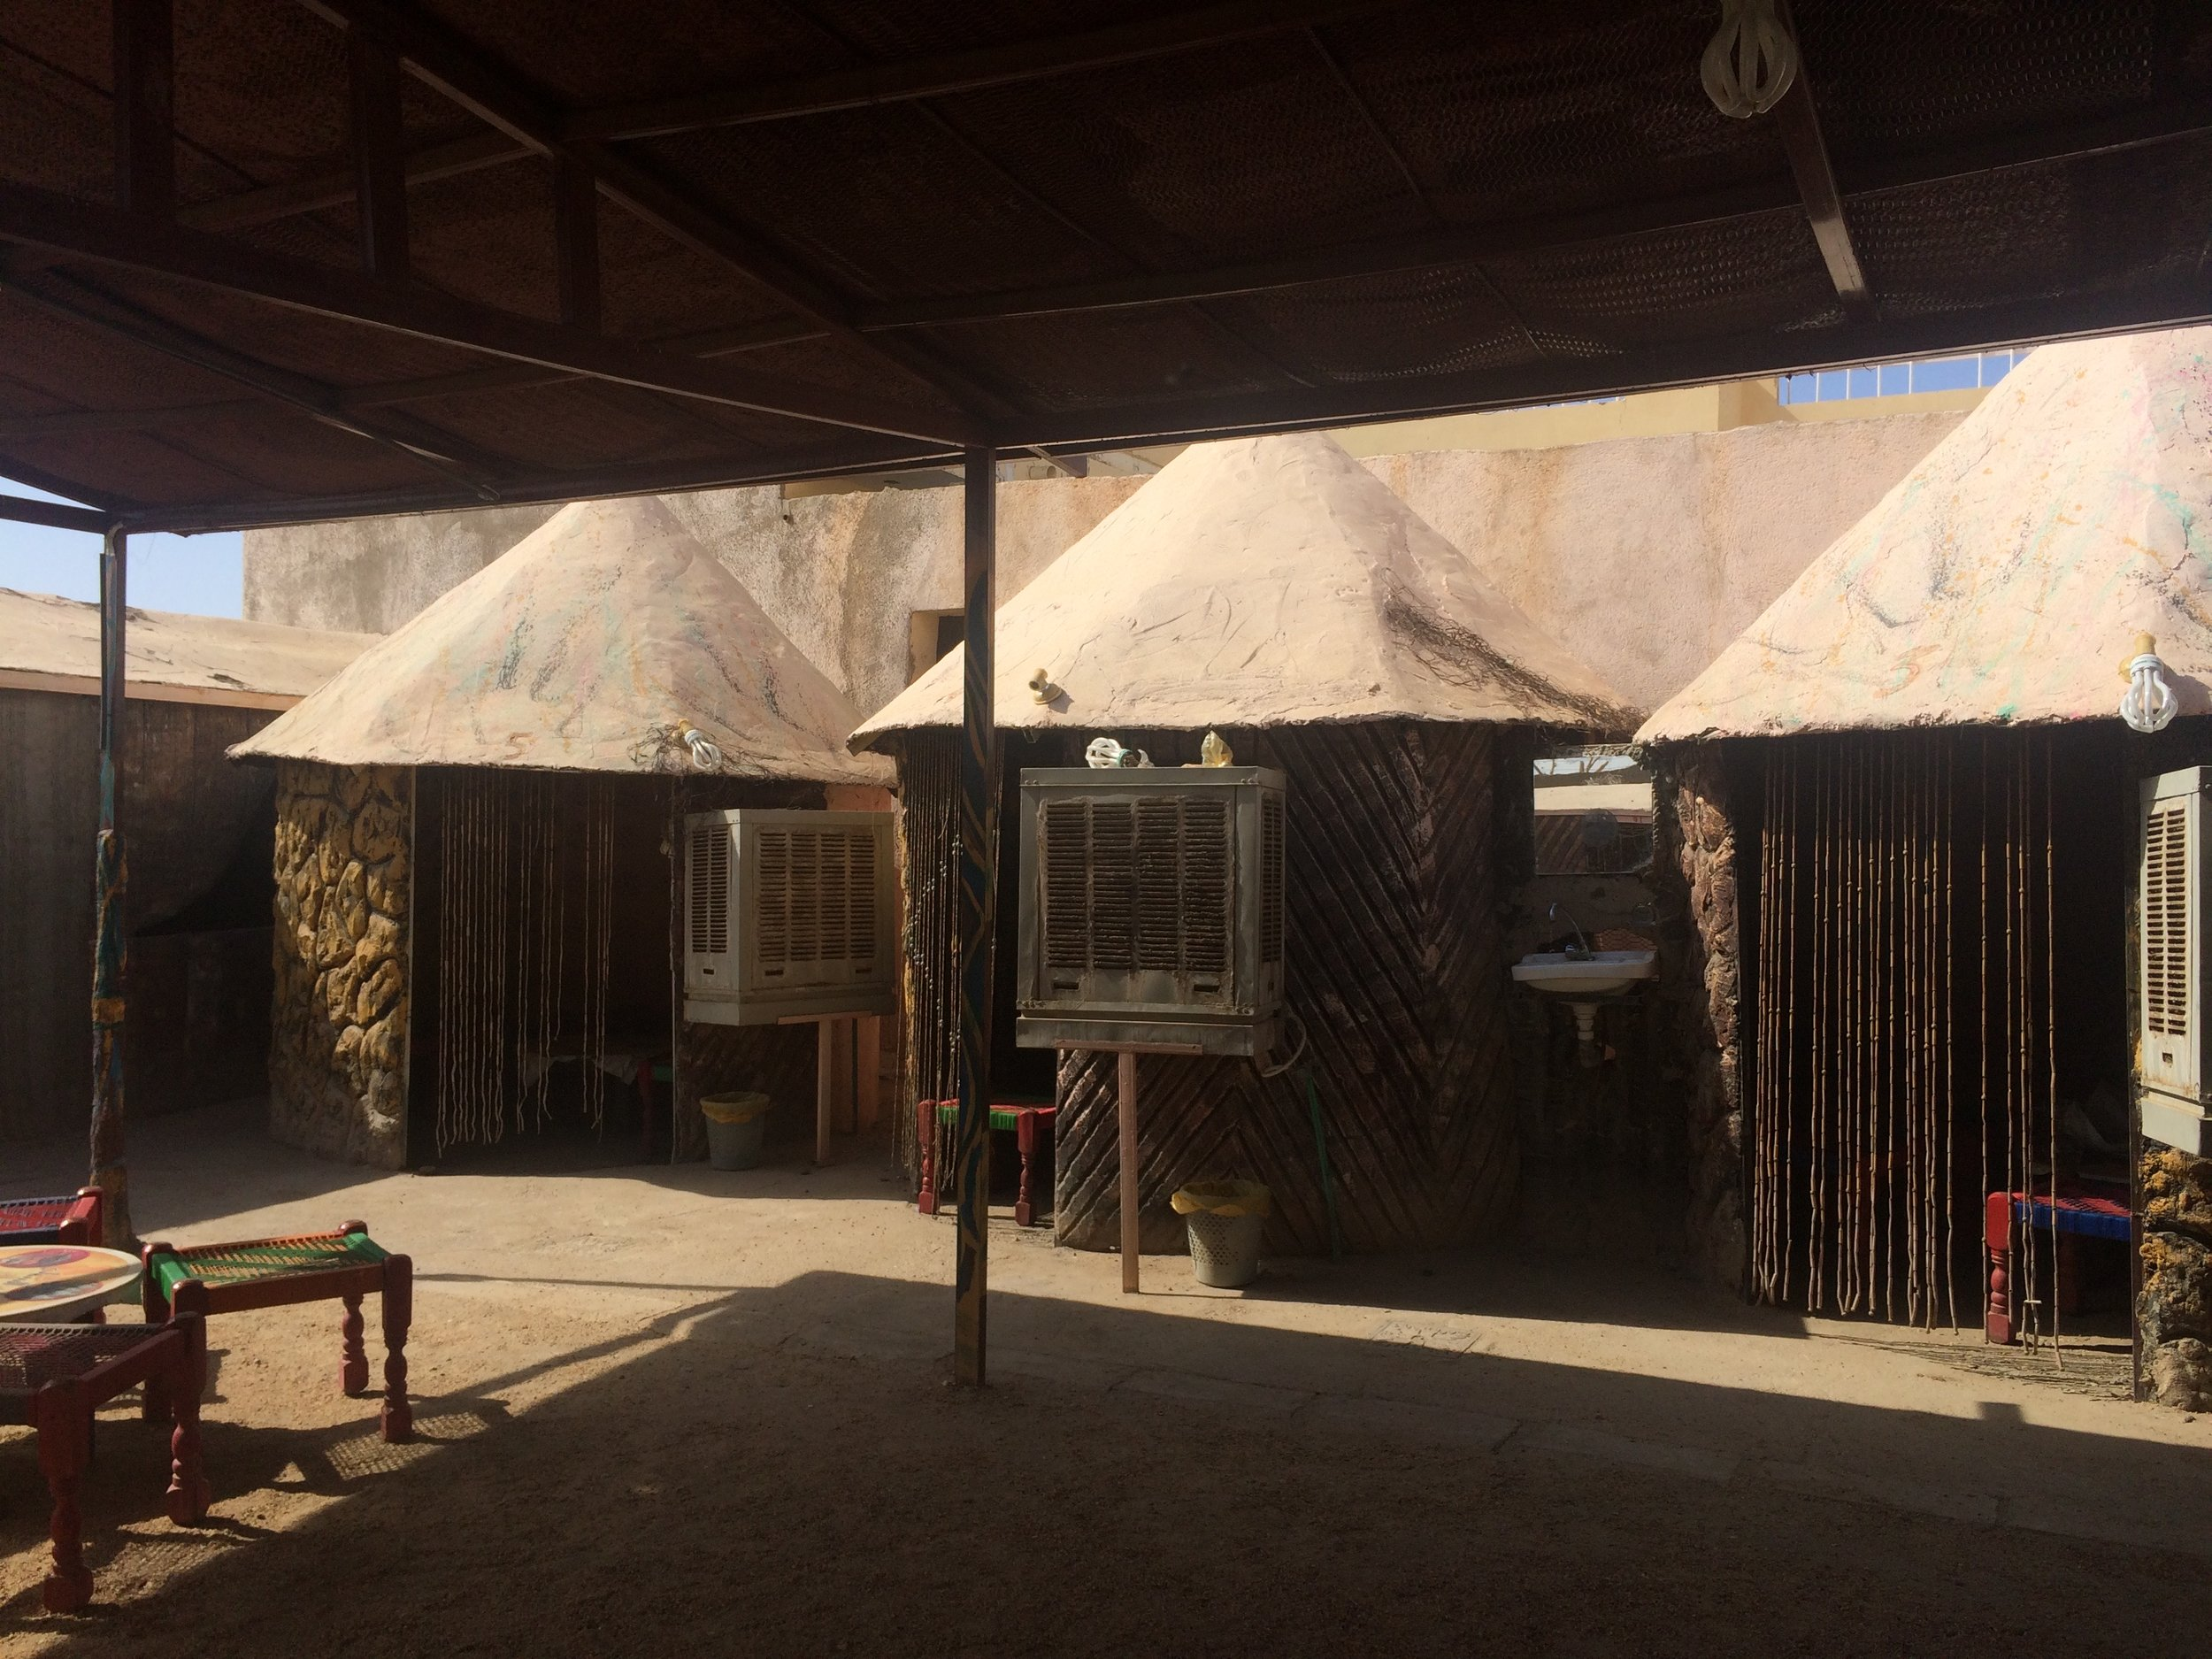 Air conditioned booth huts in the cafe.